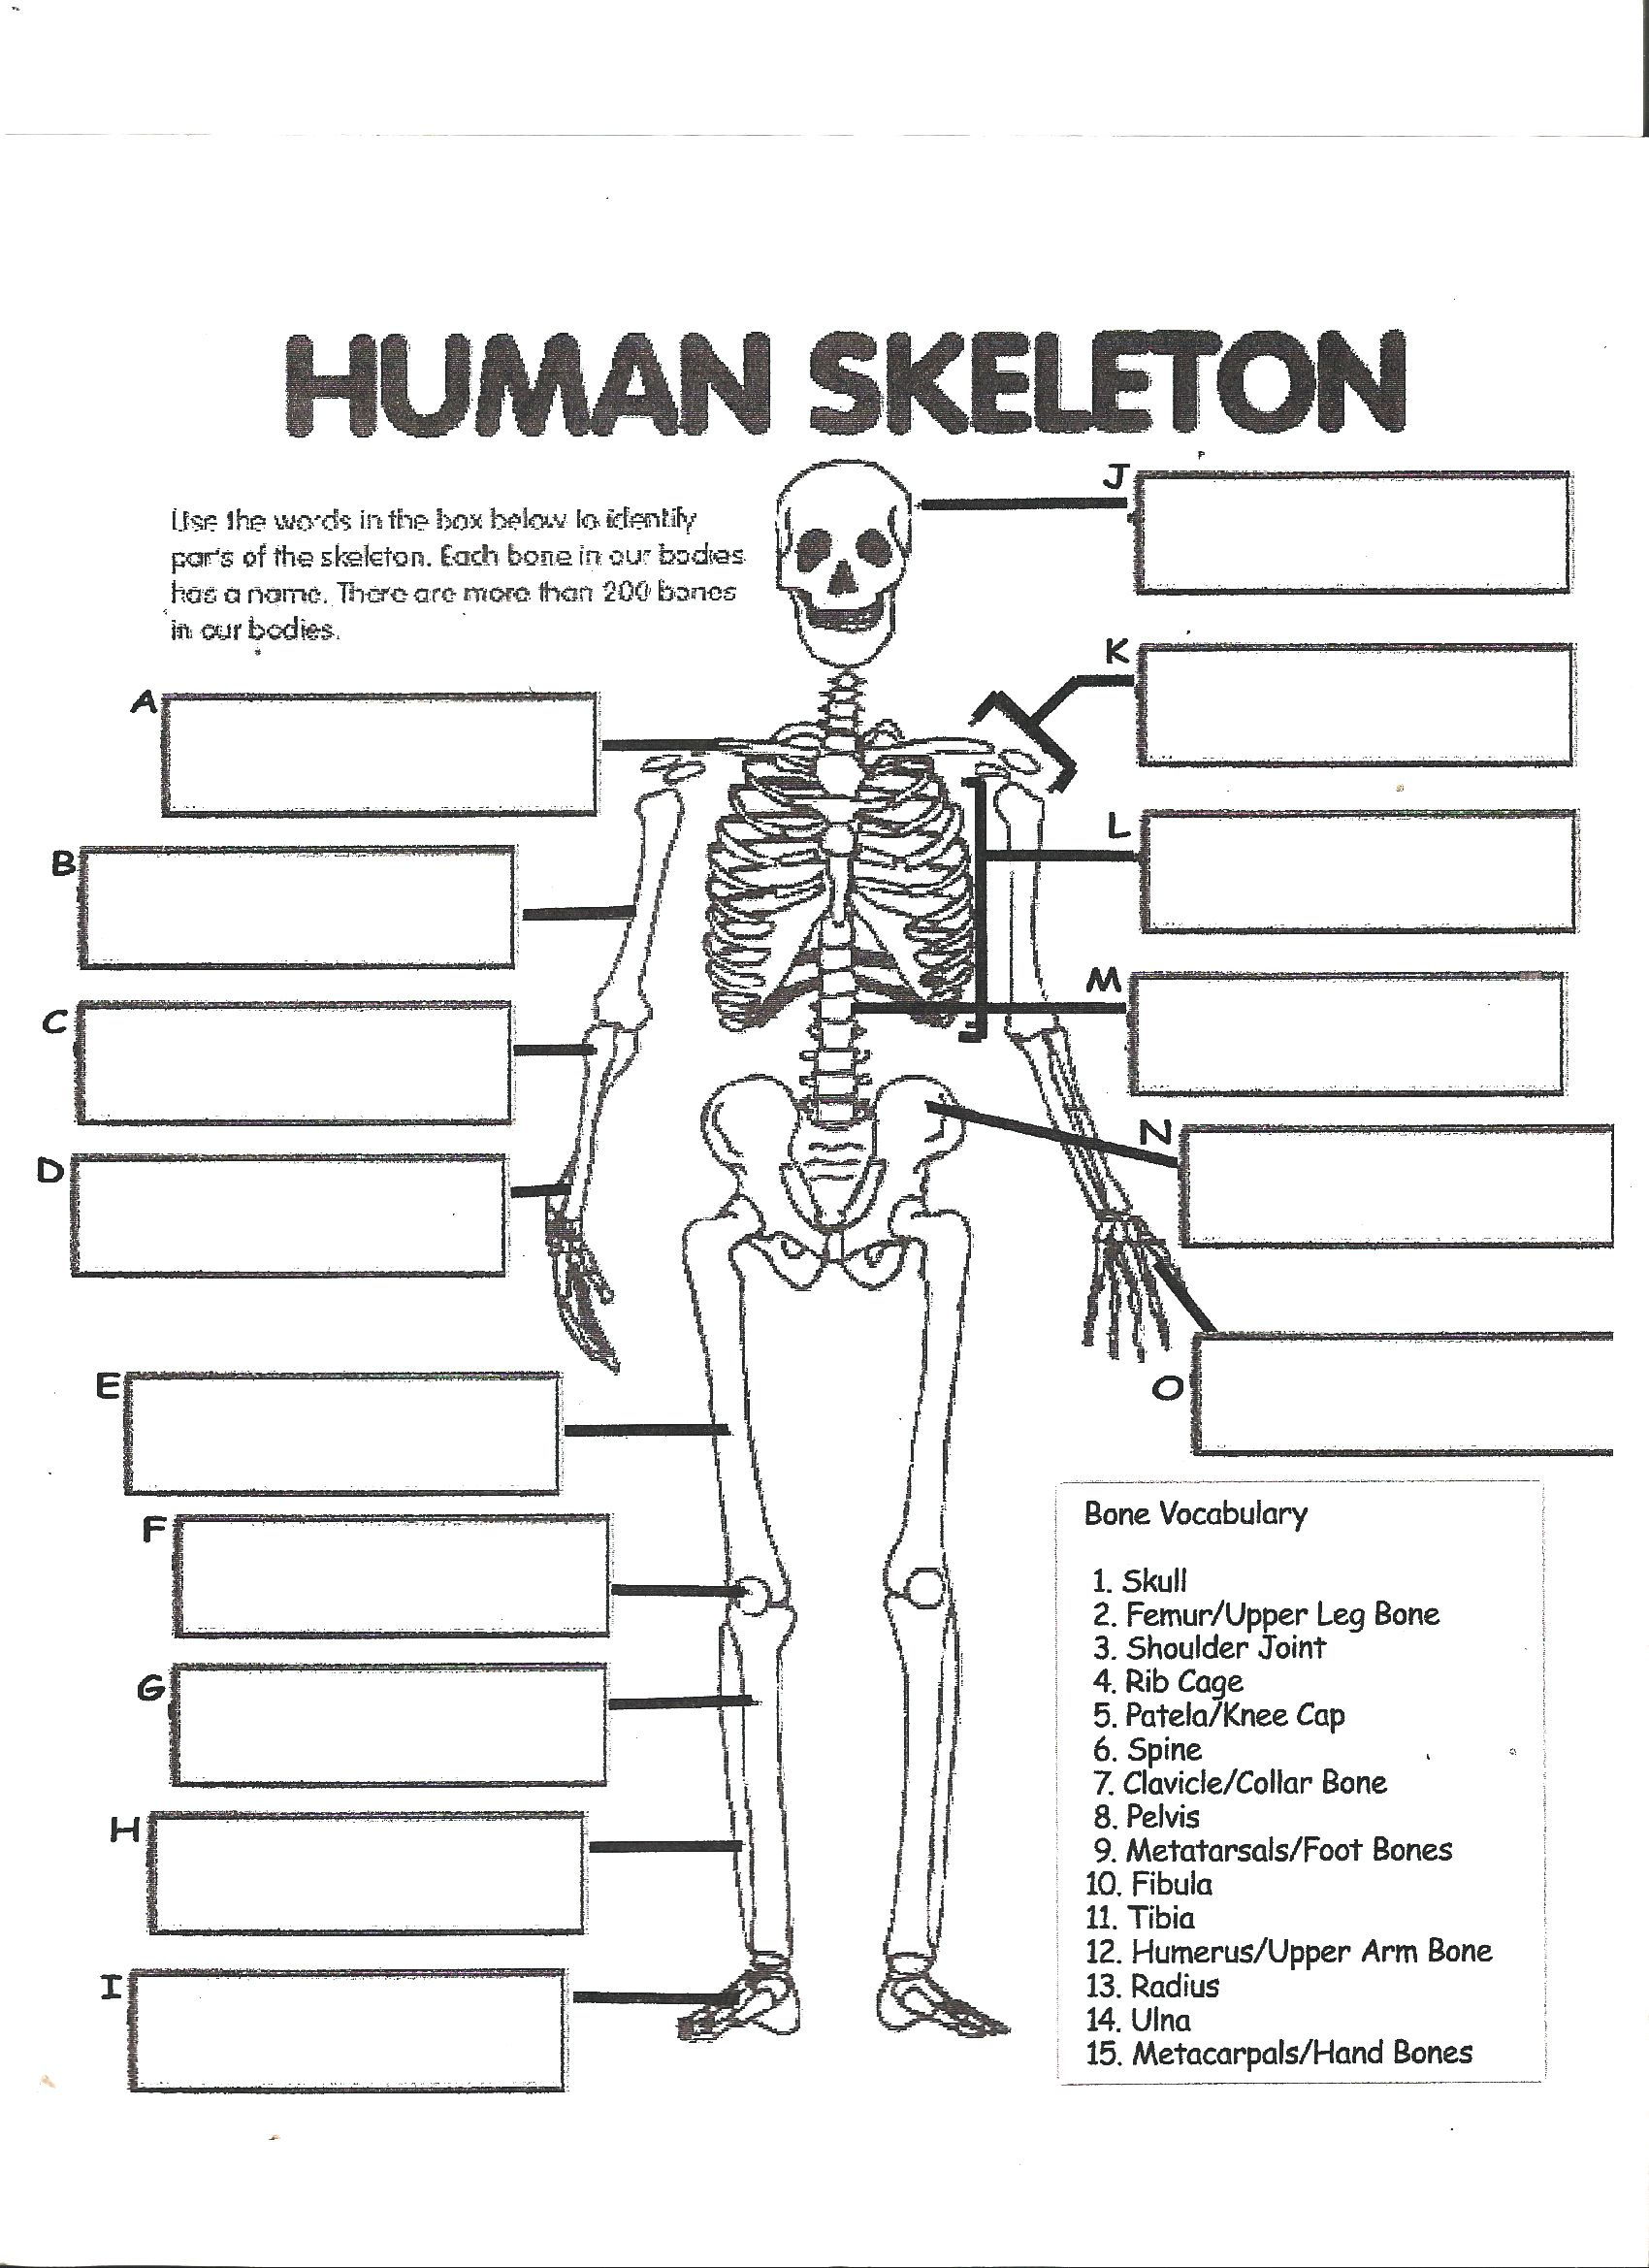 Digestive System Labeling Worksheet Answers Human Skeleton Worksheet Skeletal System Worksheet Human Body Worksheets Body Systems Worksheets